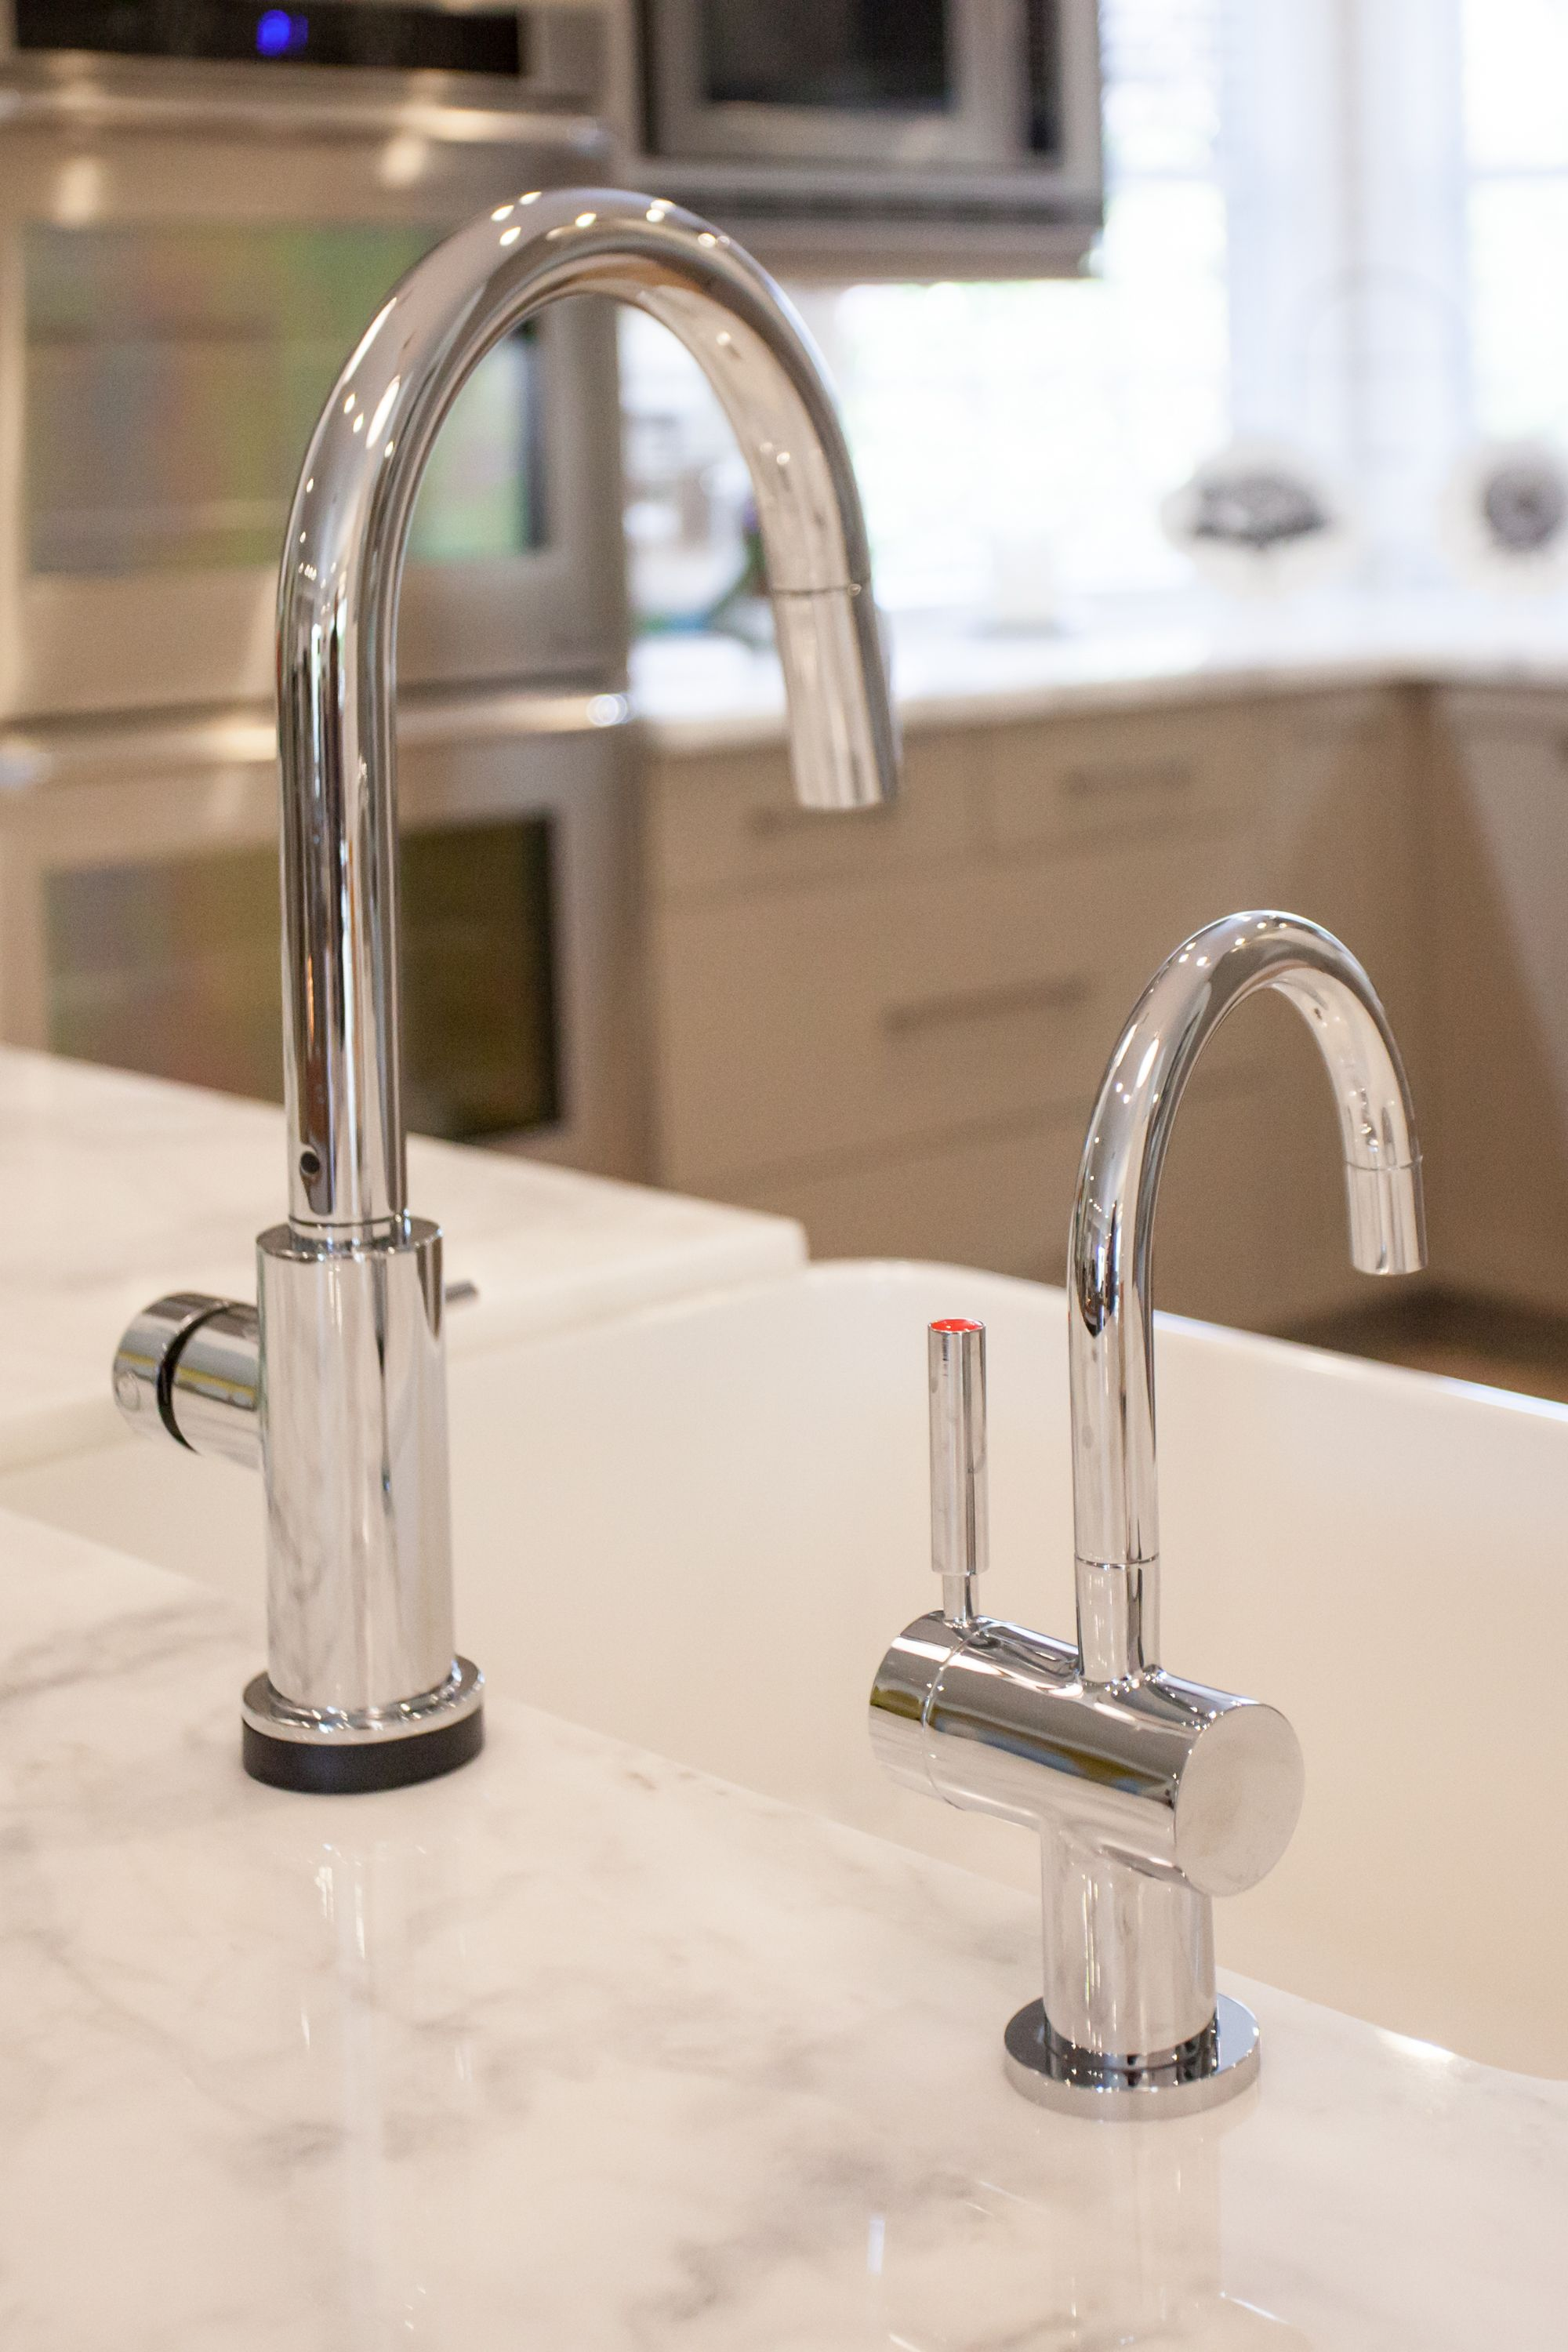 The Delta Trinsic Smart Touch Faucet along side the Insinkerator ...